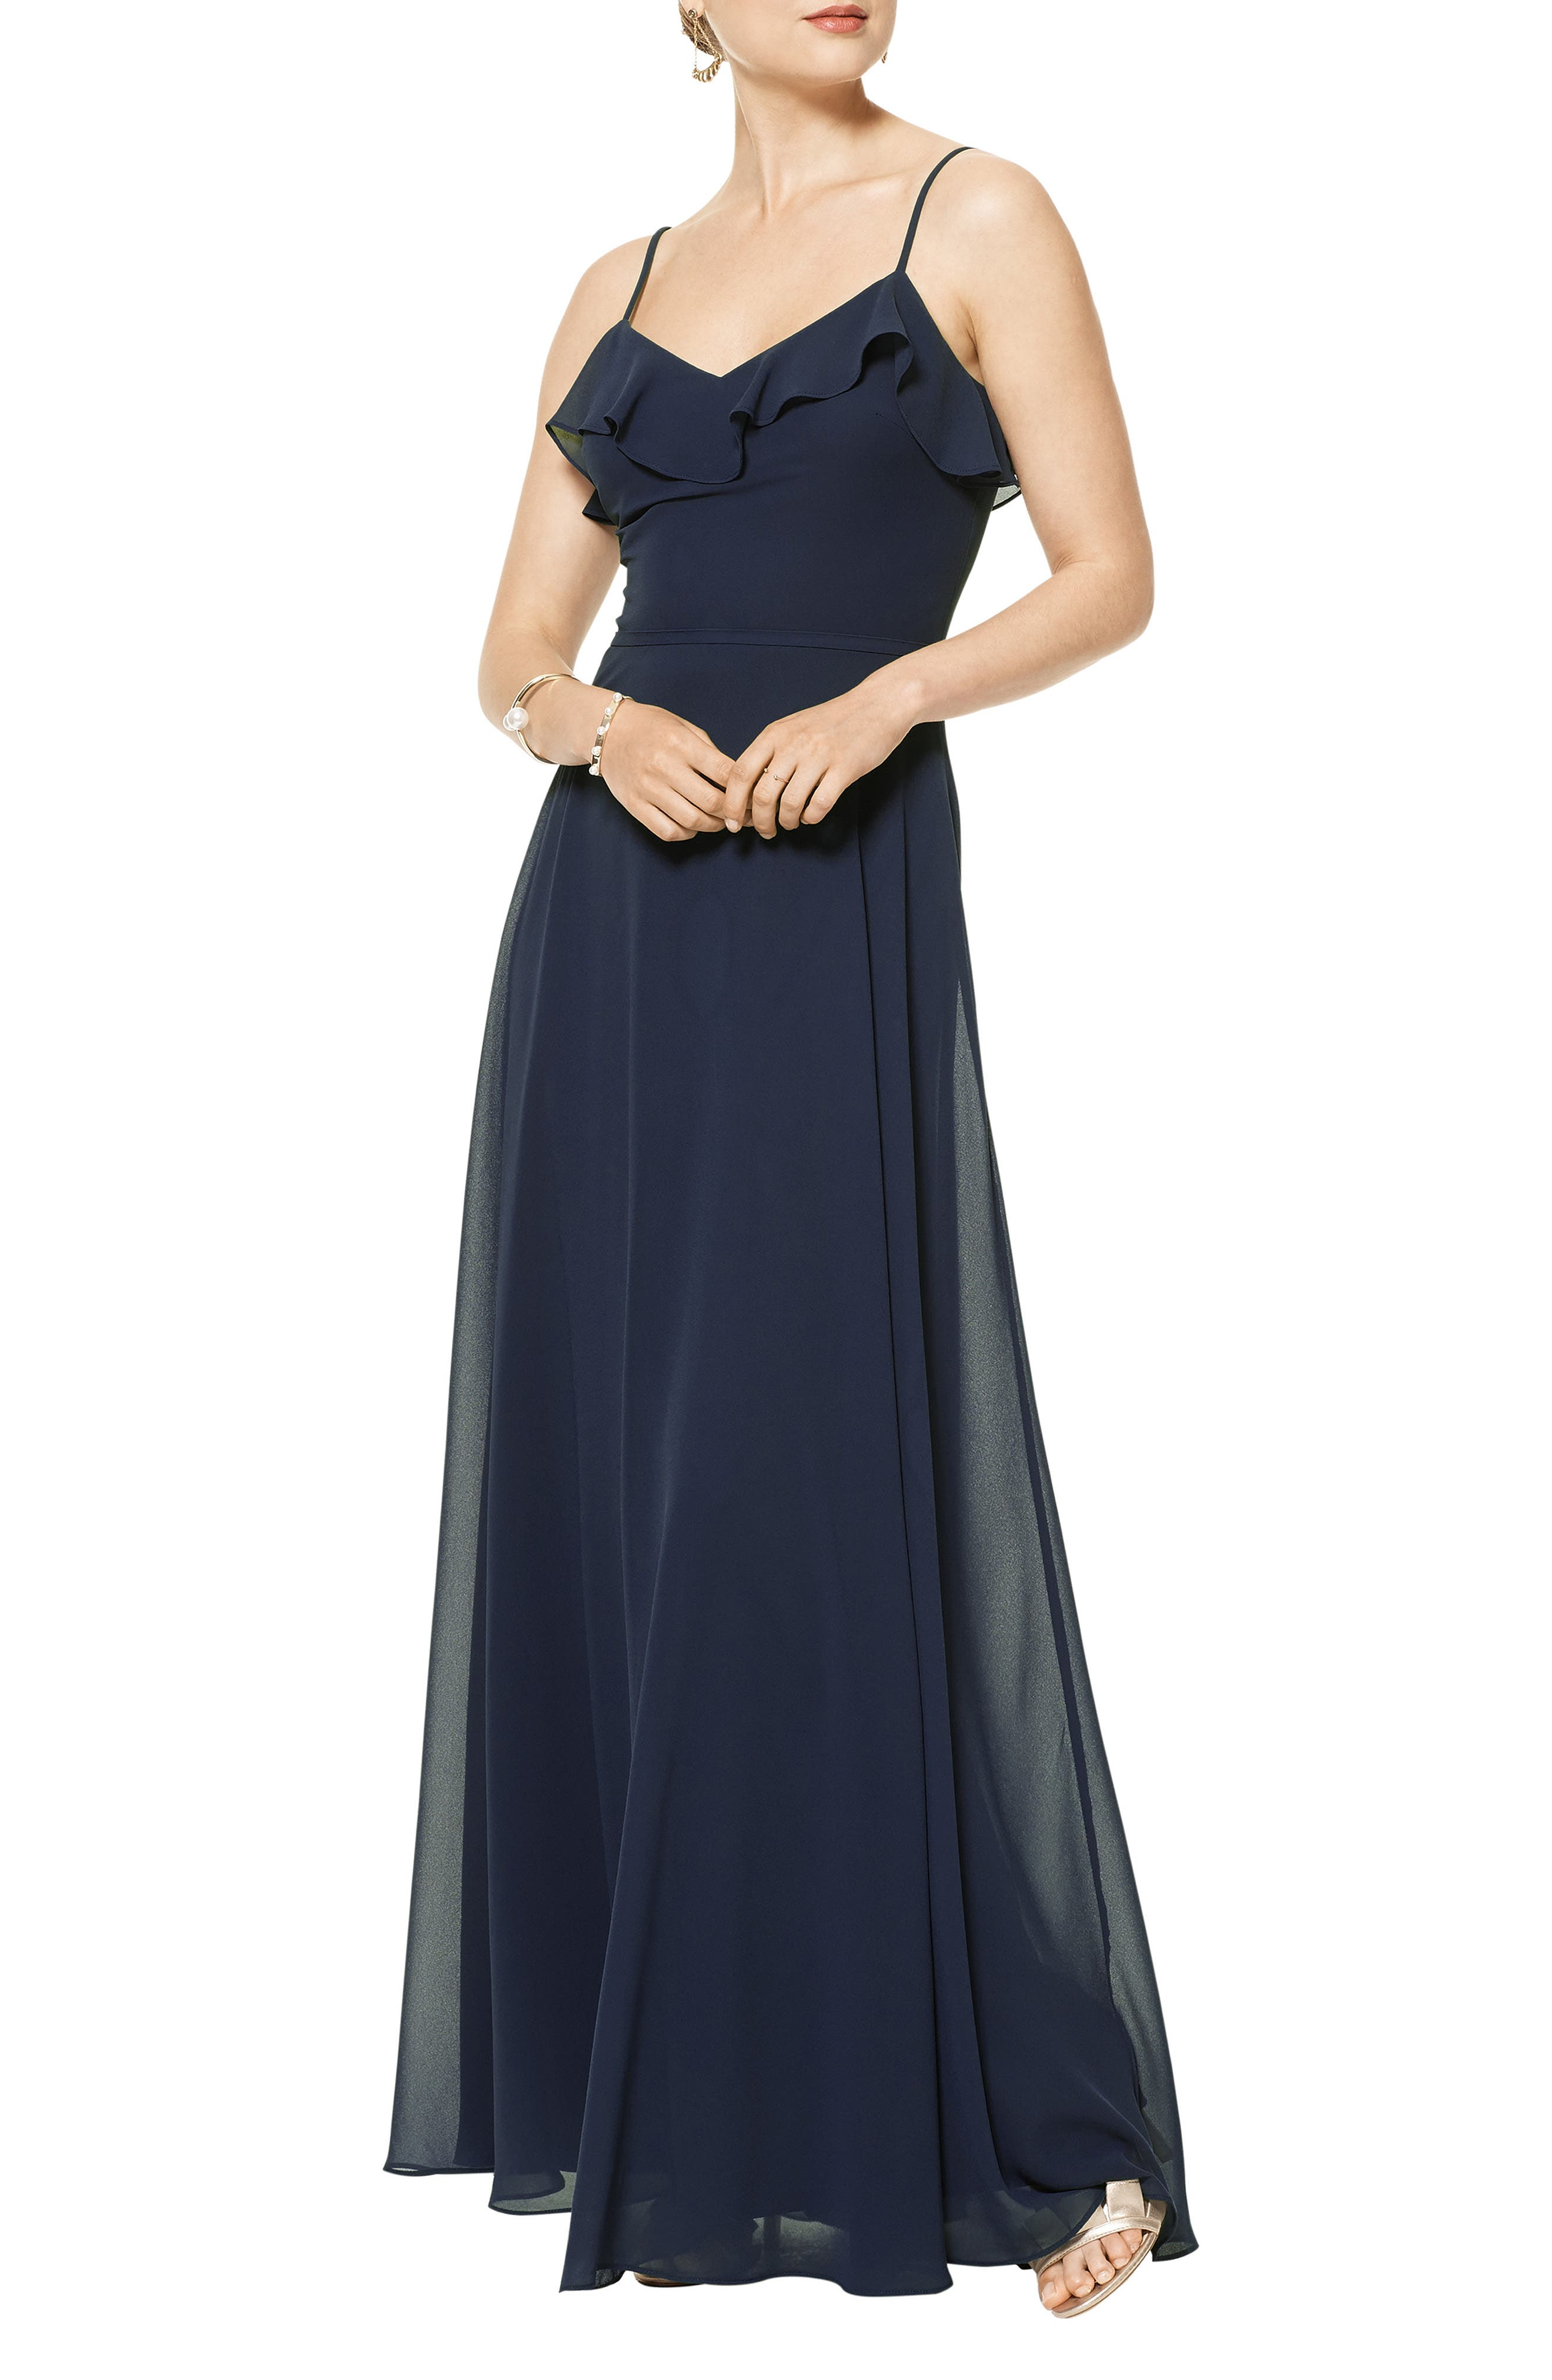 Ruffles trace the front and back V-necklines on this flowy A-line gown cut from elegant, airy chiffon. Style Name:#levkoff Ruffle V-Neck Chiffon Gown. Style Number: 5991049. Available in stores.